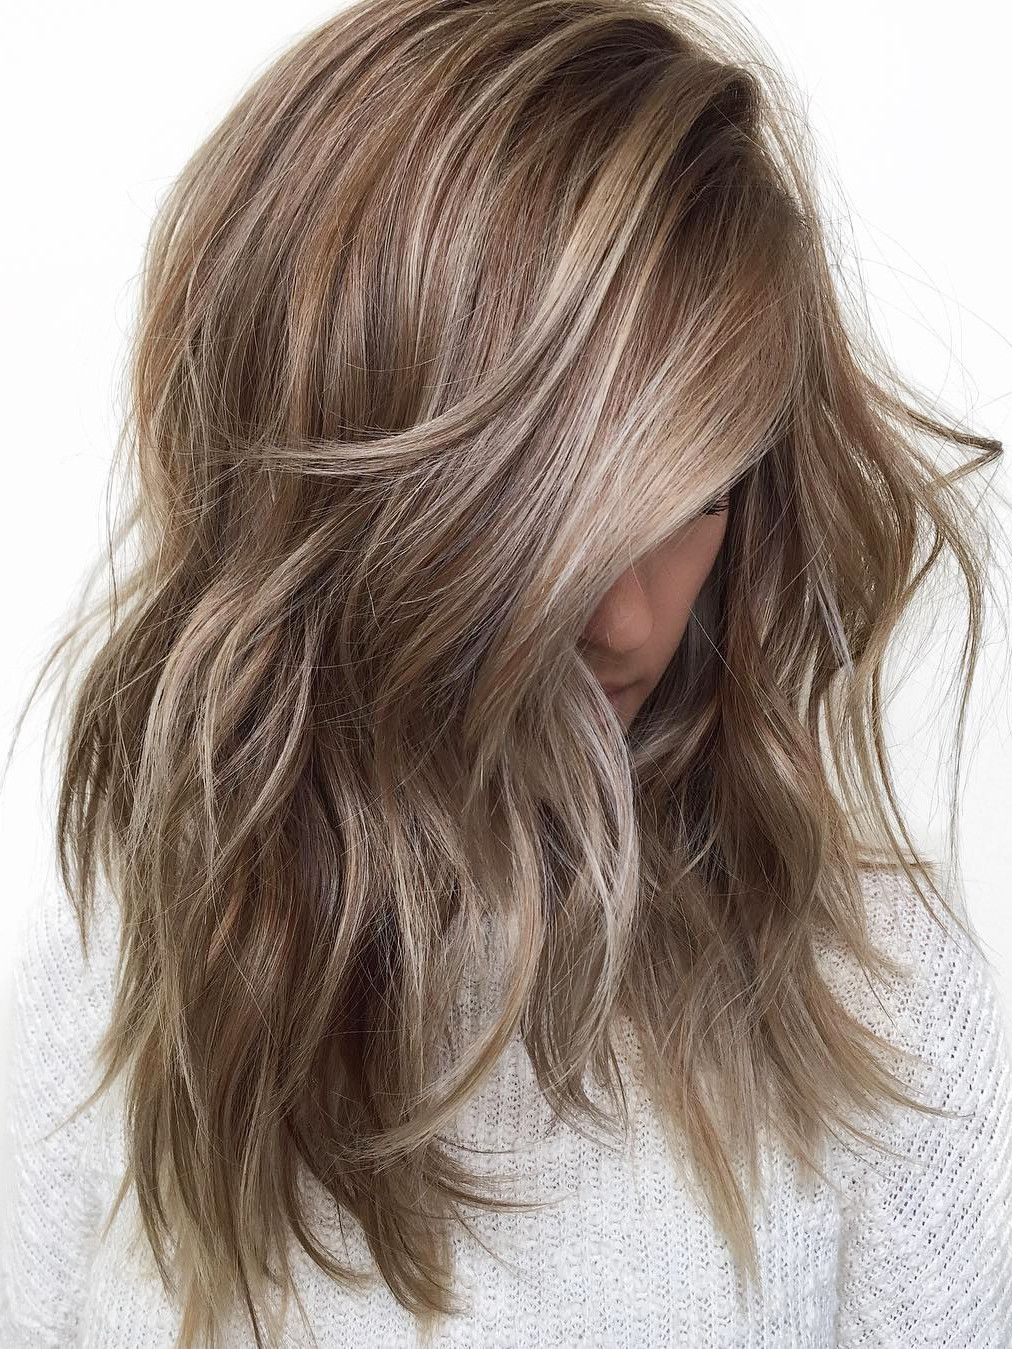 6 Of The Most Flattering Blonde Hair Colors For Cool Undertones